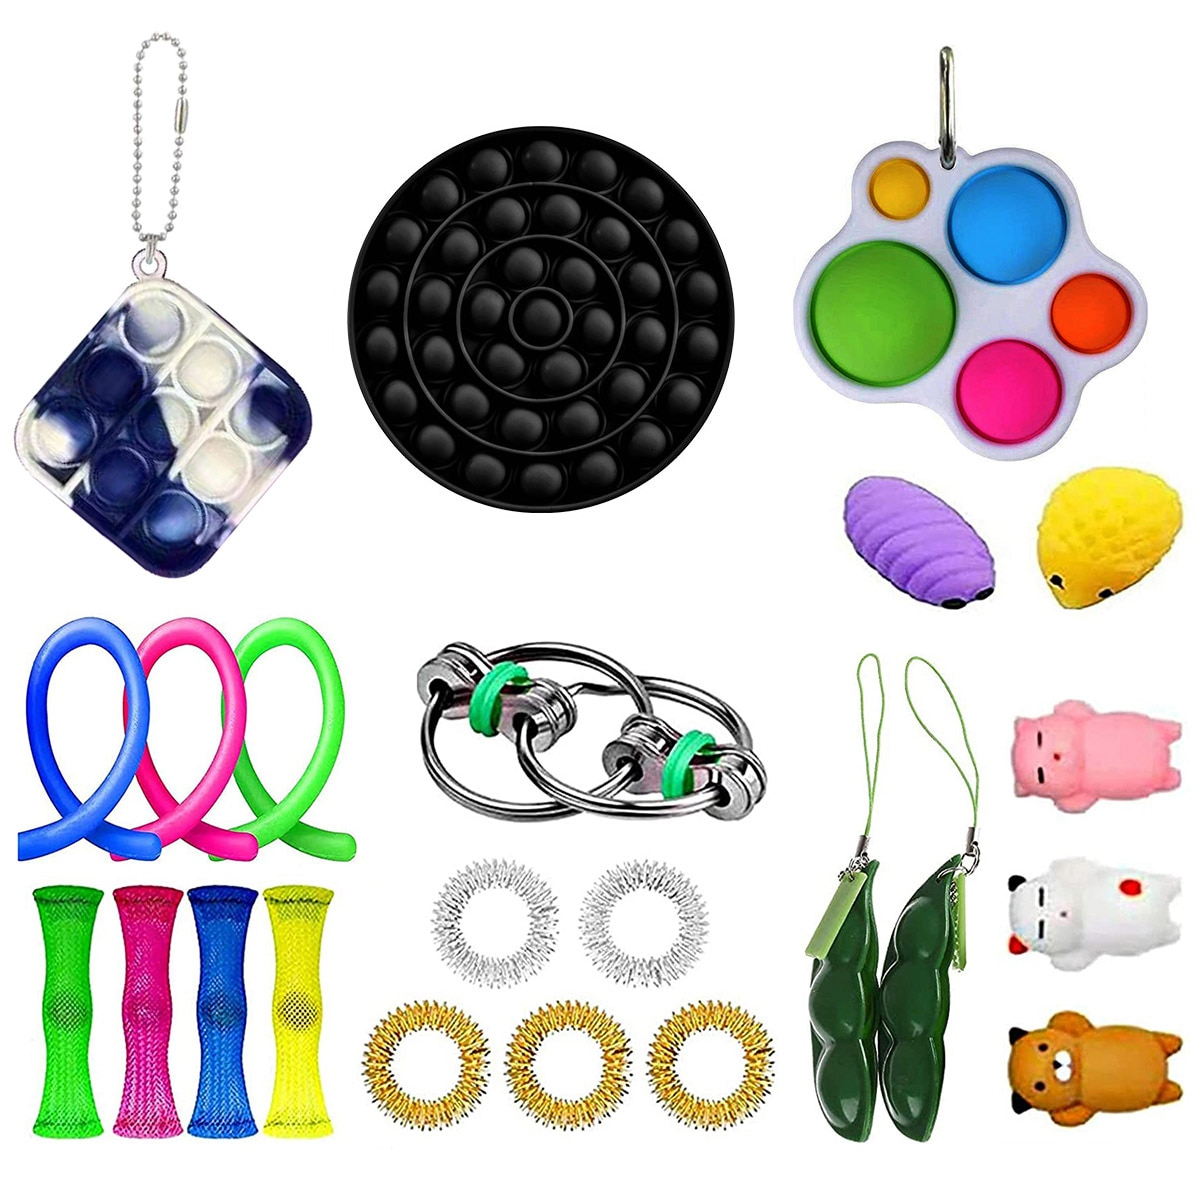 23 Pack Anti Stress Fidget Toys Set Stretchy Strings Key Chain Relief Gift Adults Children Sensory Stress Relief Fidget Toys enlarge